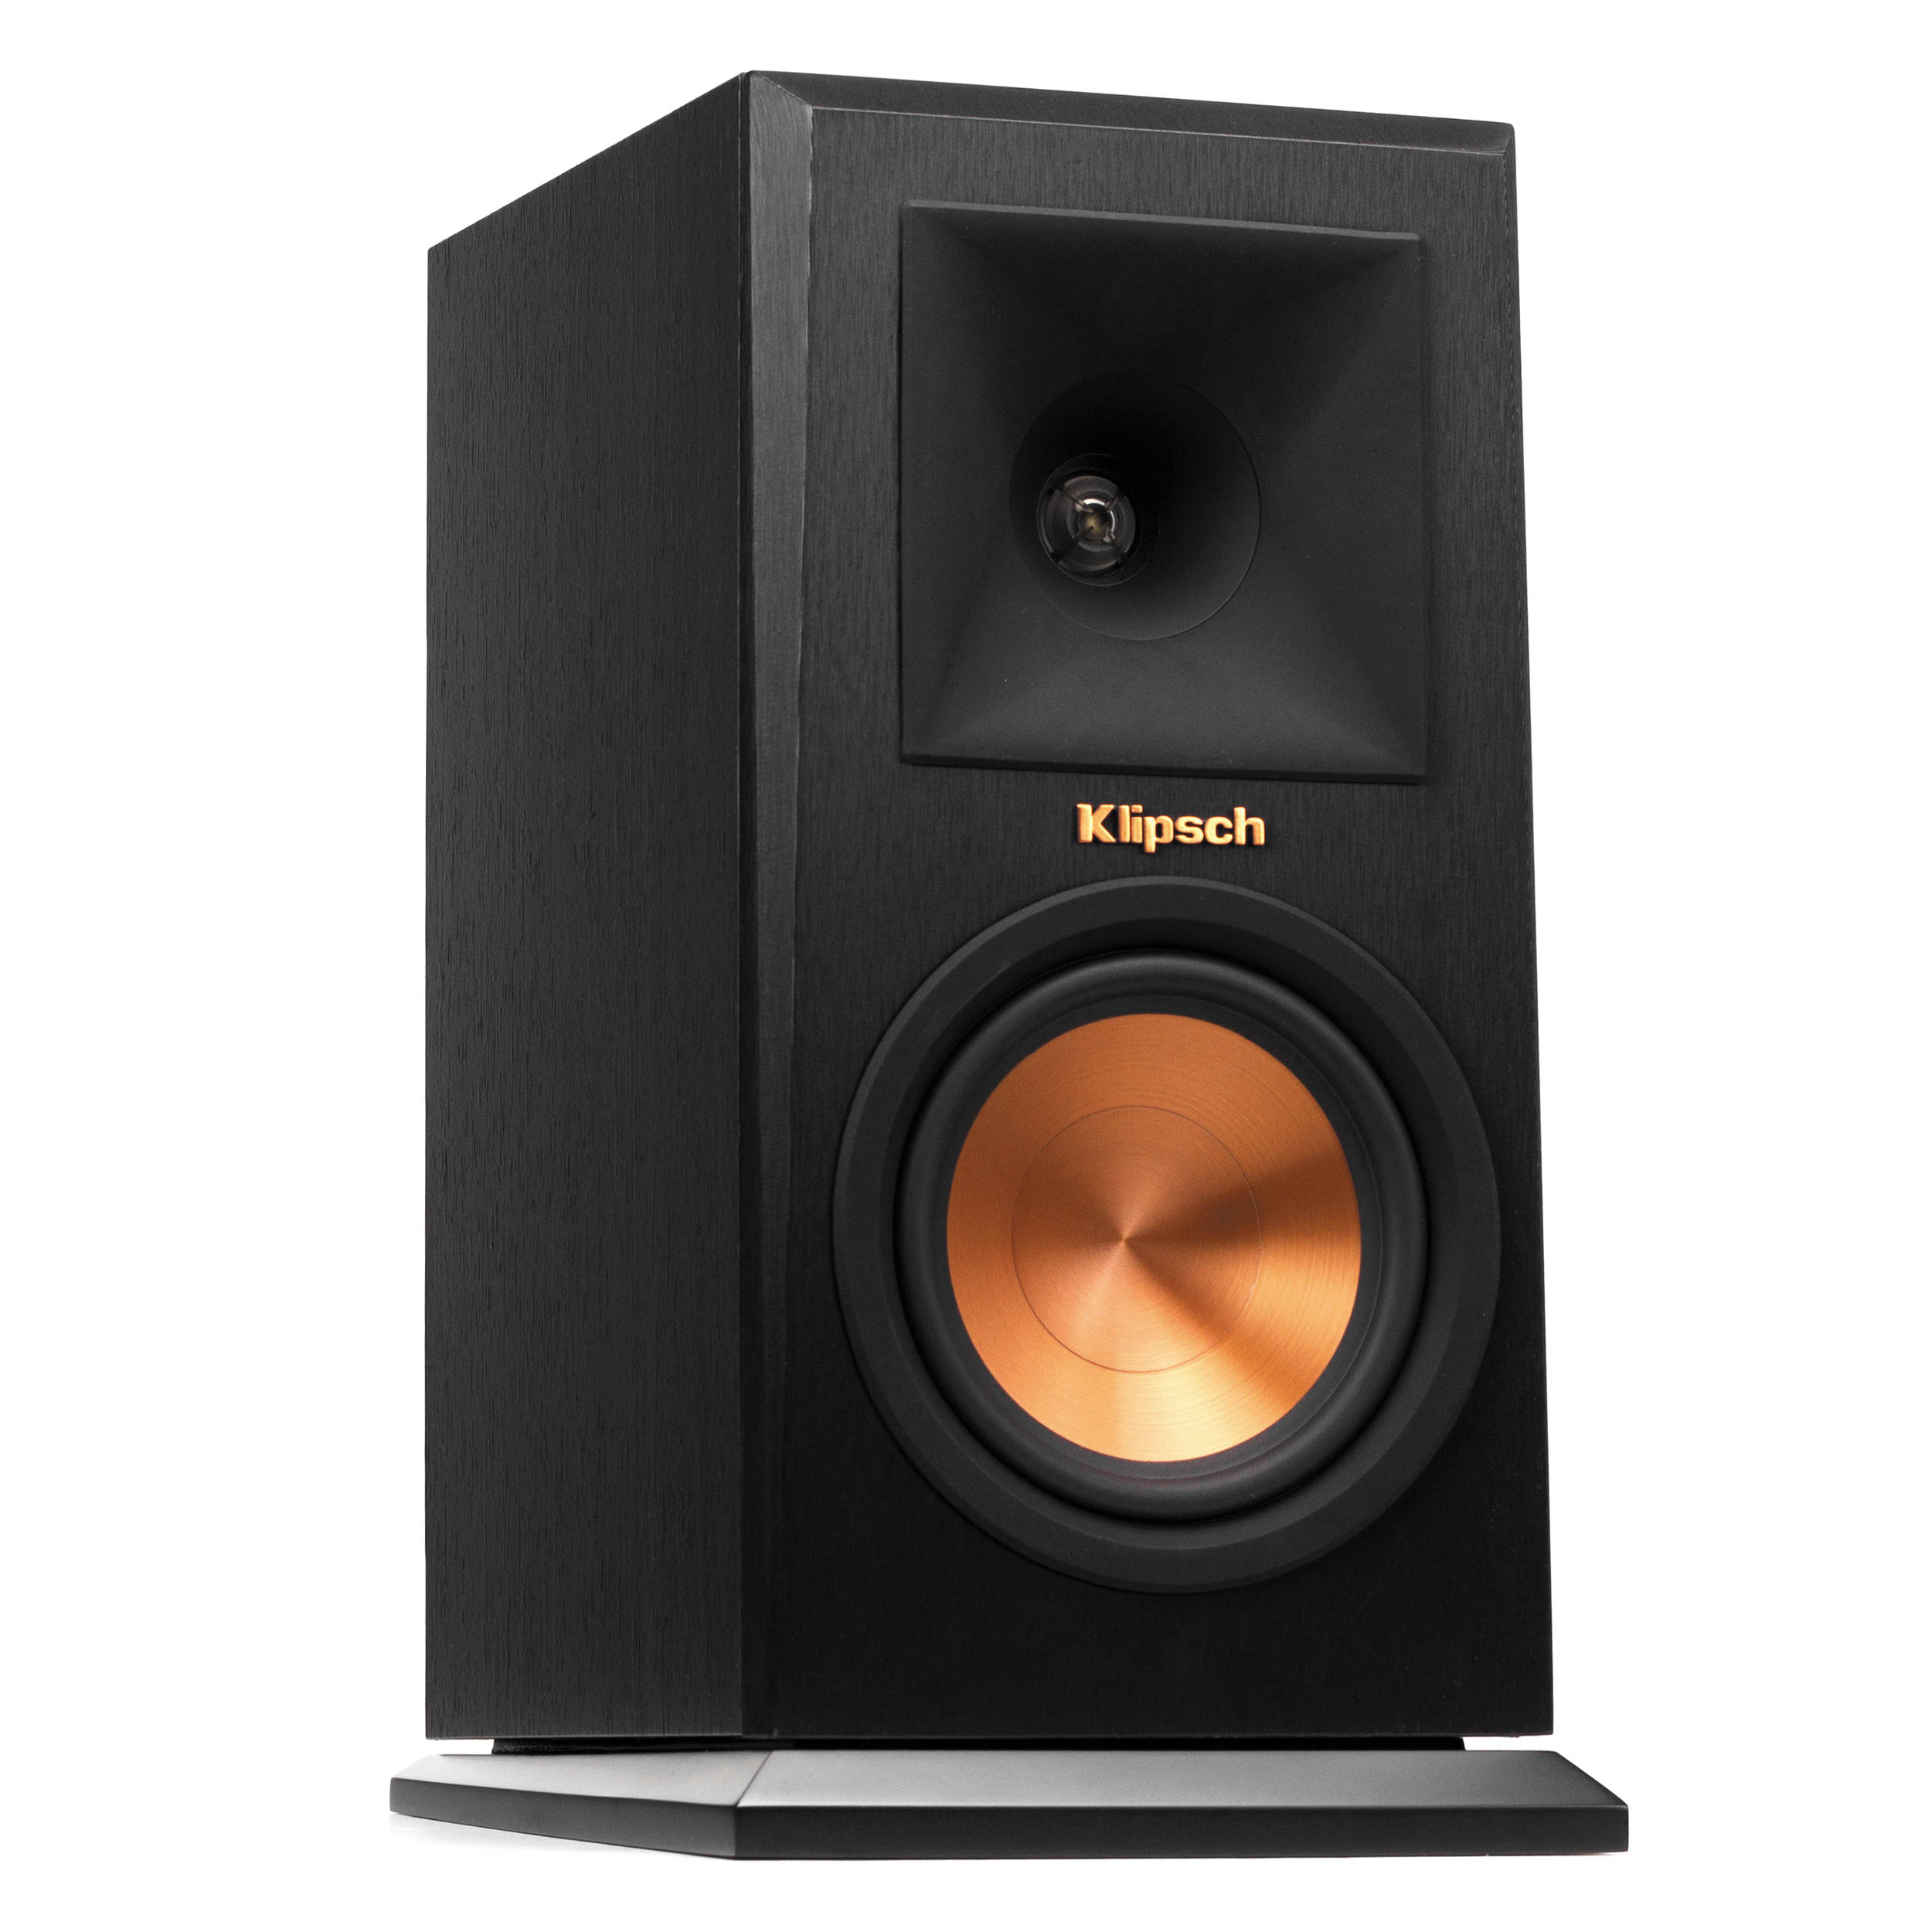 nice speakers and helpful rb technology bookshelf looking speaker articles klipsch